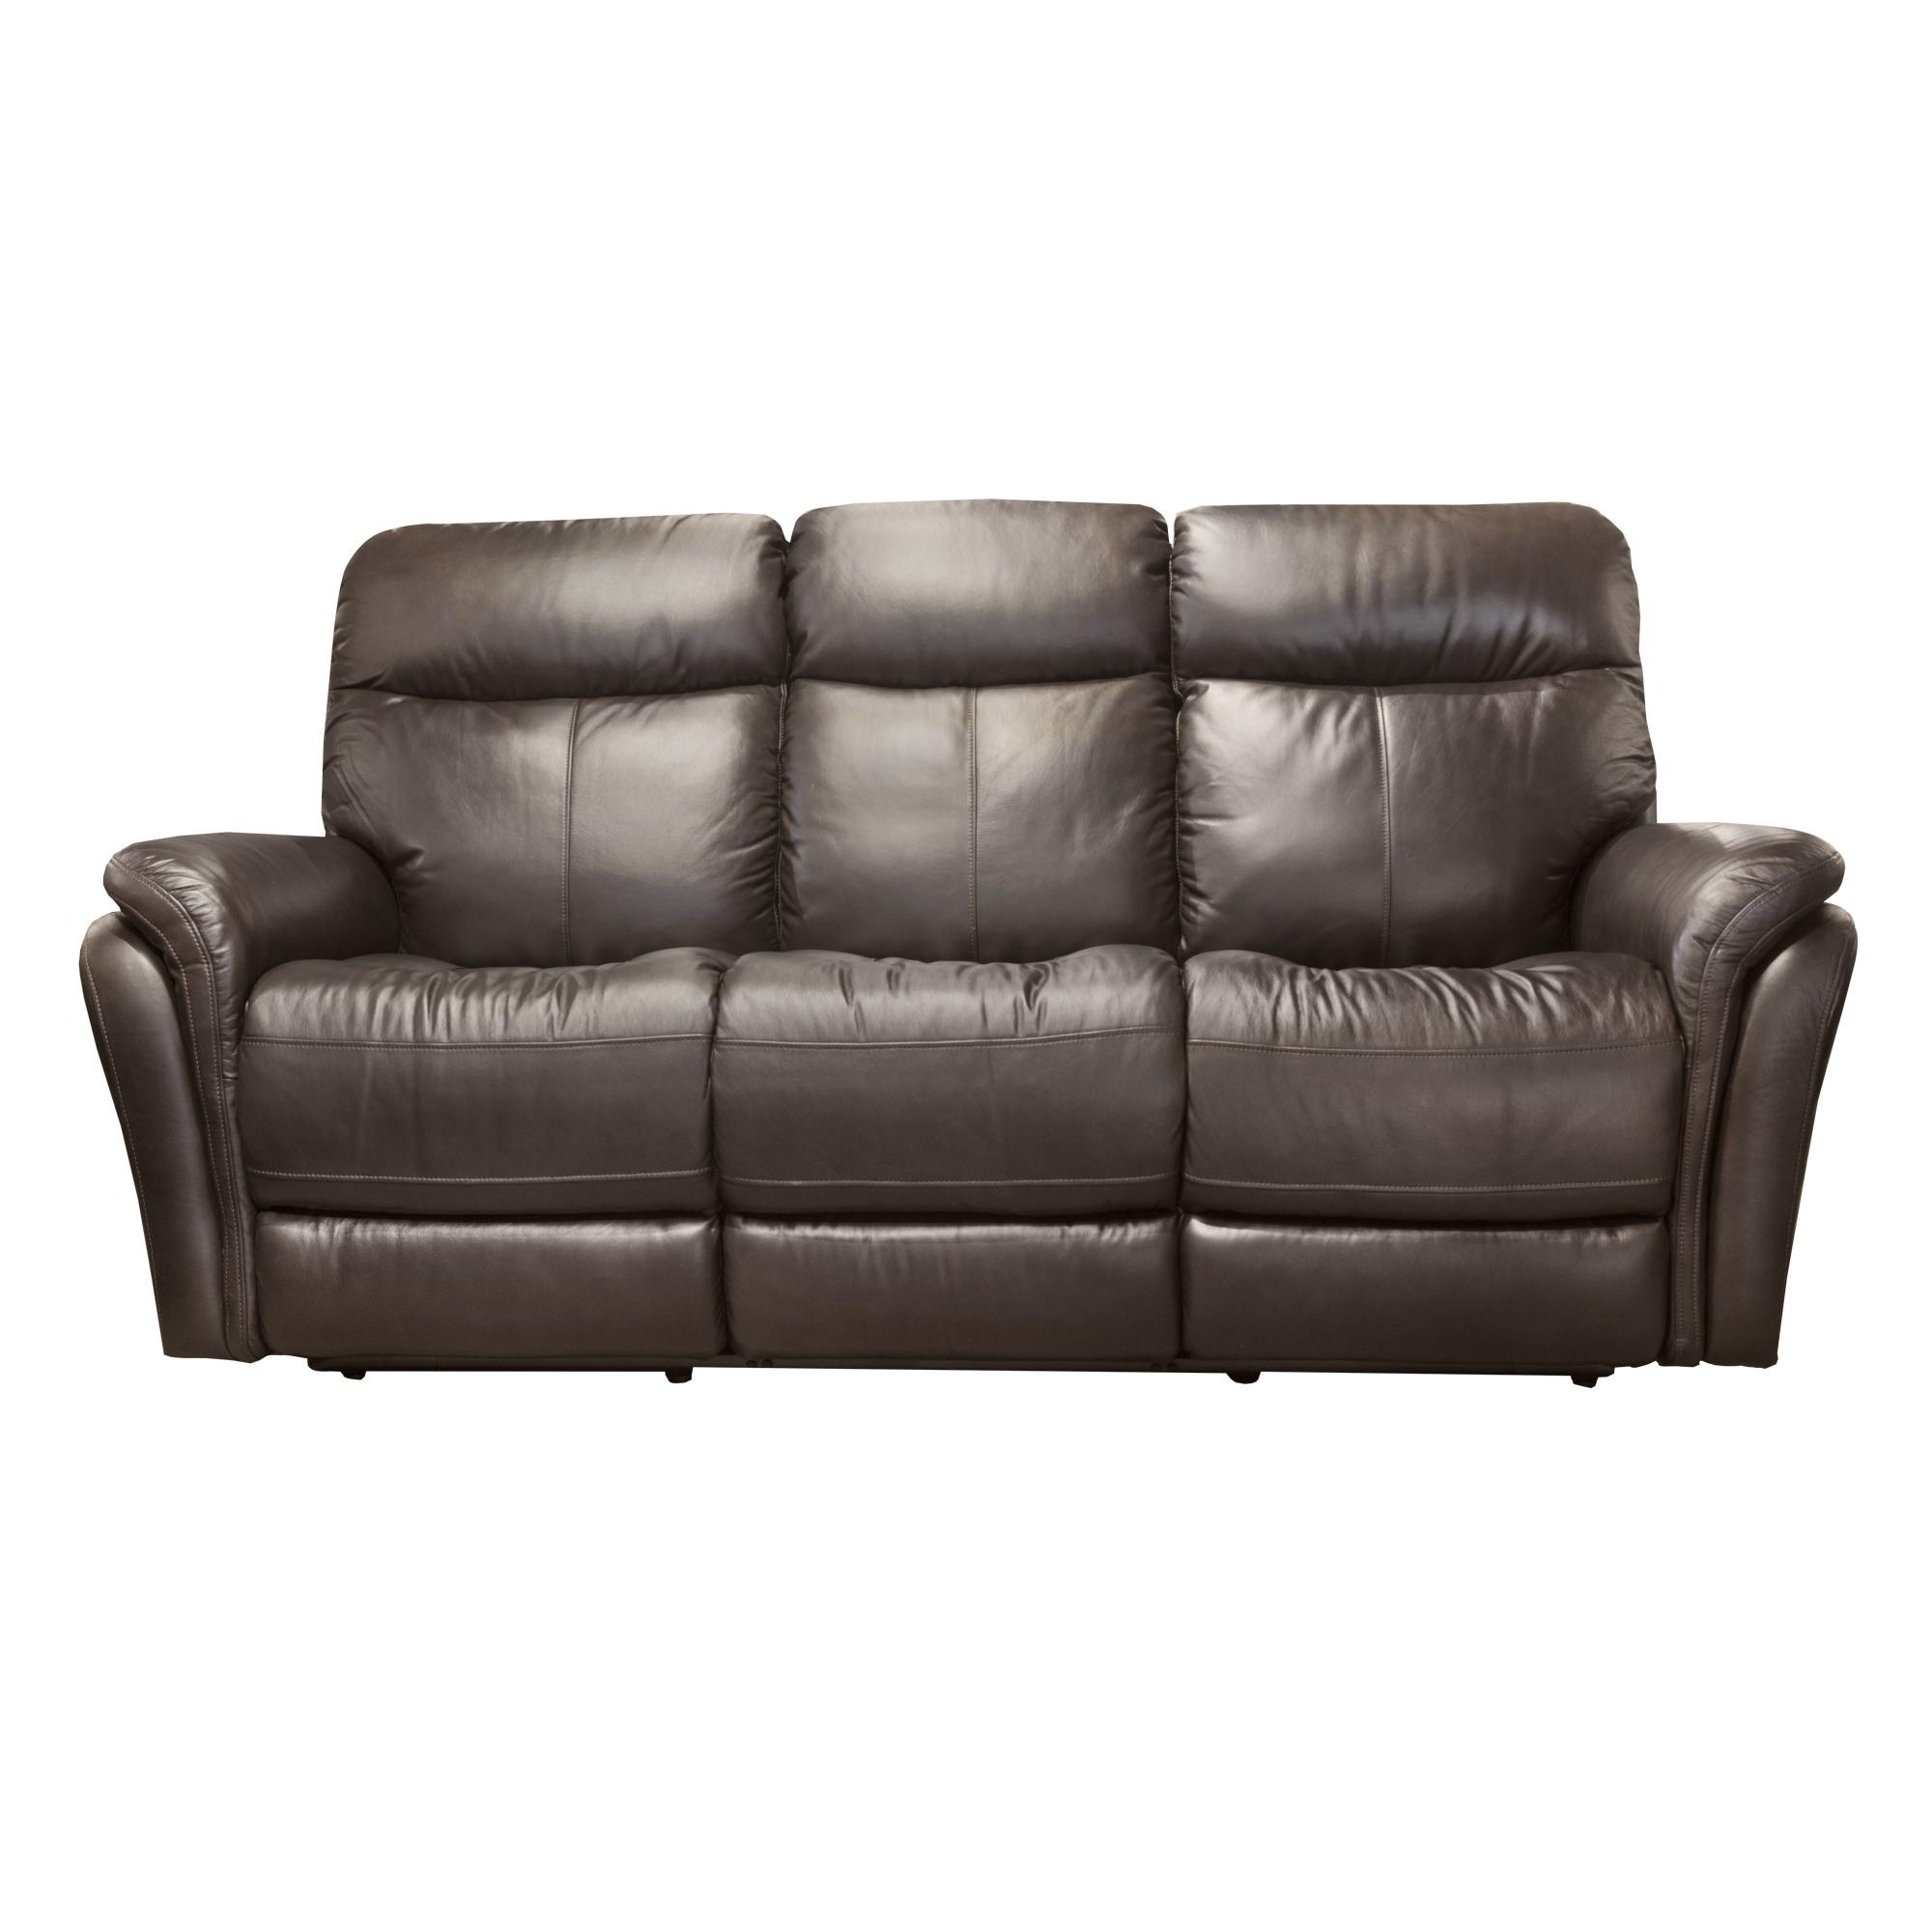 Zoey Brown Power Reclining Sofa With Power Headrest Pertaining To Preferred Expedition Brown Power Reclining Sofas (View 3 of 15)